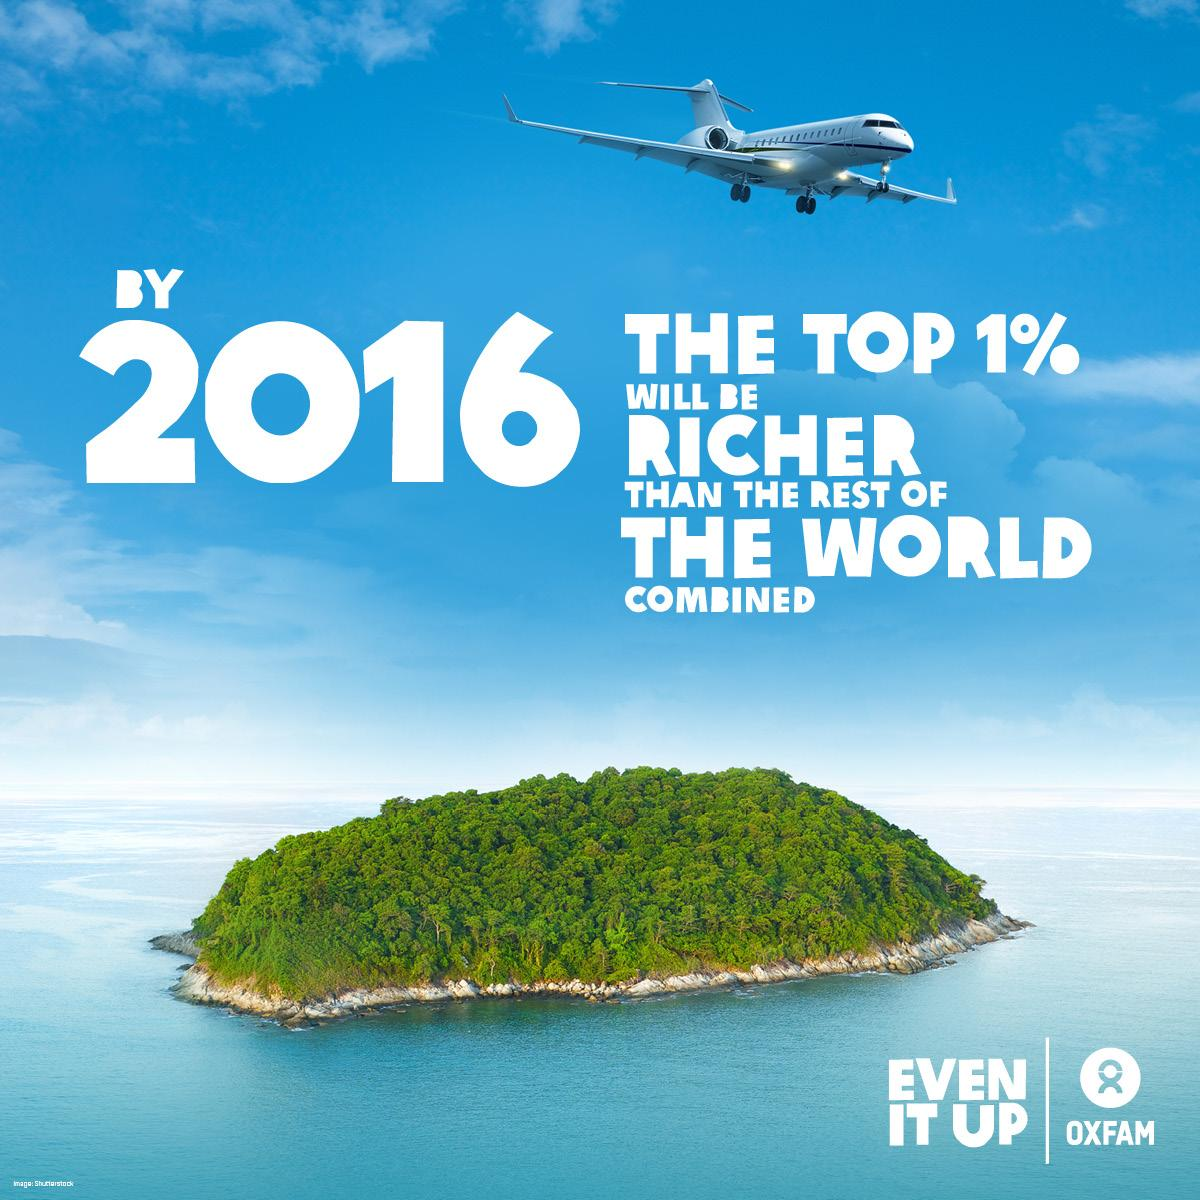 Staggering #inequality: top 1% will own 50% of world's wealth by 2016. You can help #EvenitUp! http://t.co/176qNENAXj http://t.co/rfMHKmVWRq